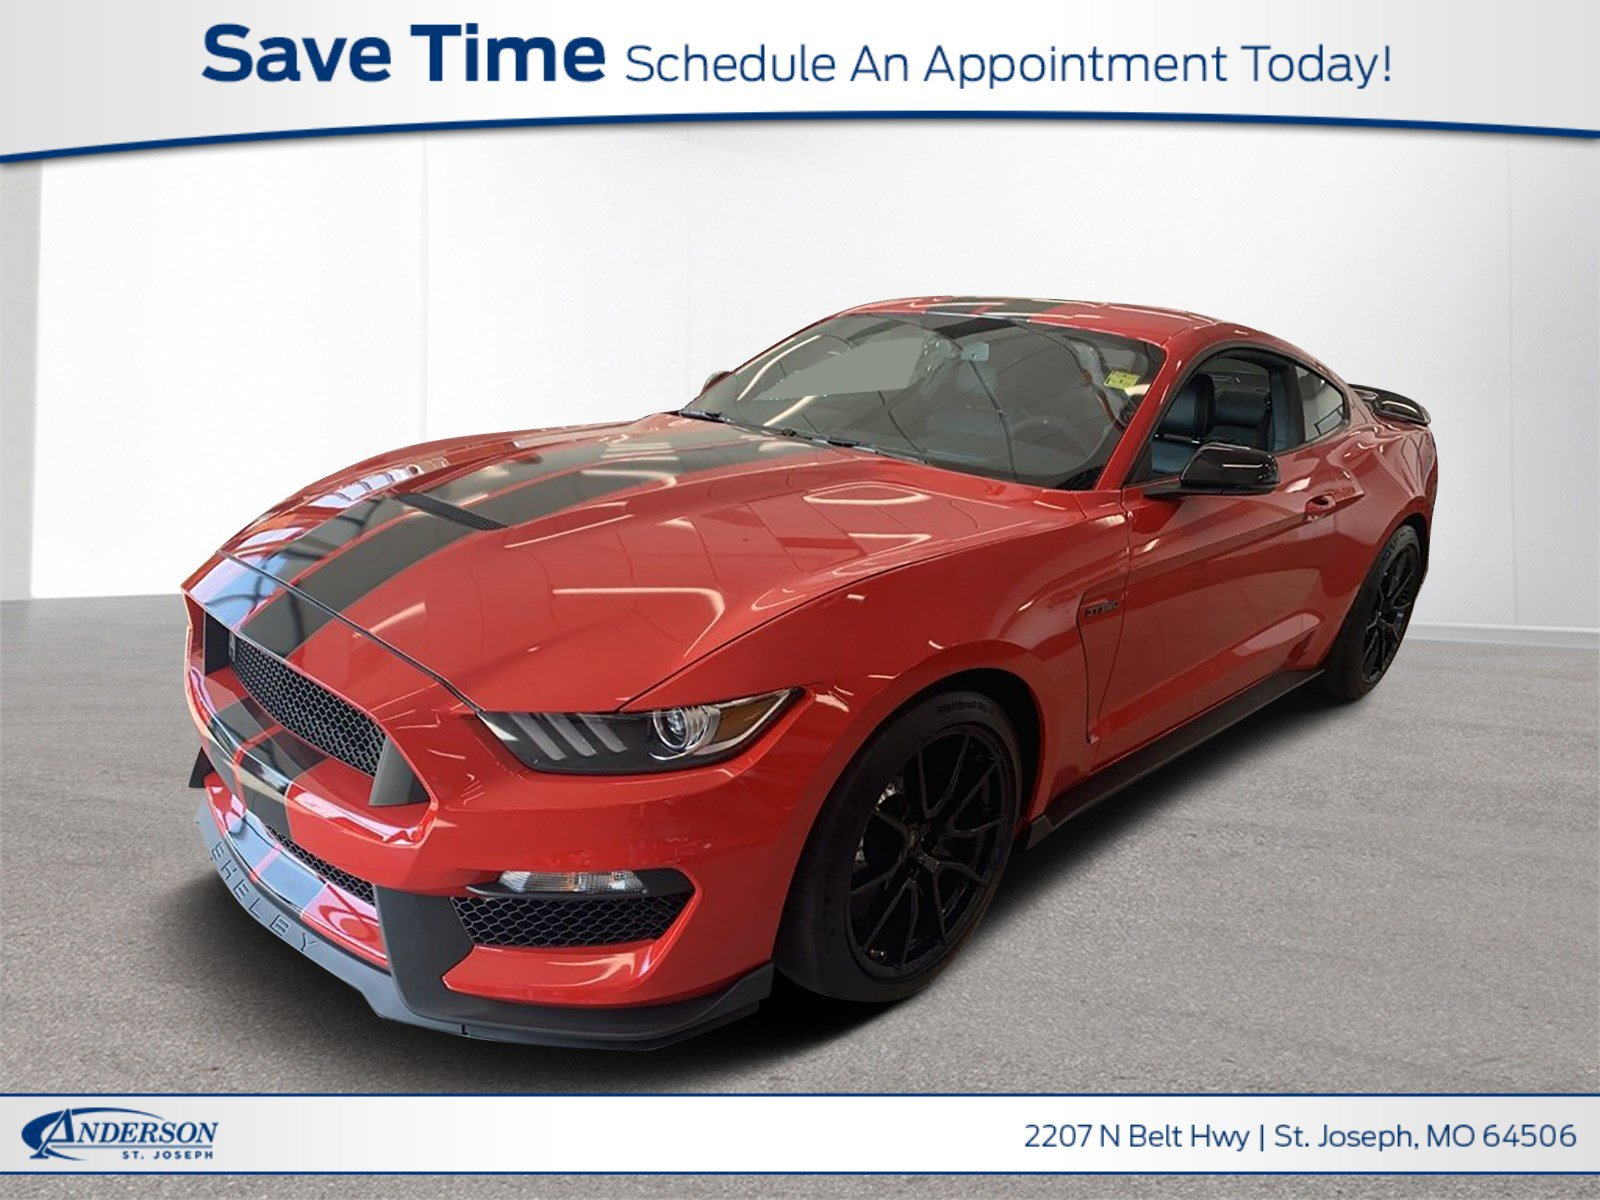 New 2019 Ford Mustang Shelby gt350 2dr Car for sale in St Joseph MO